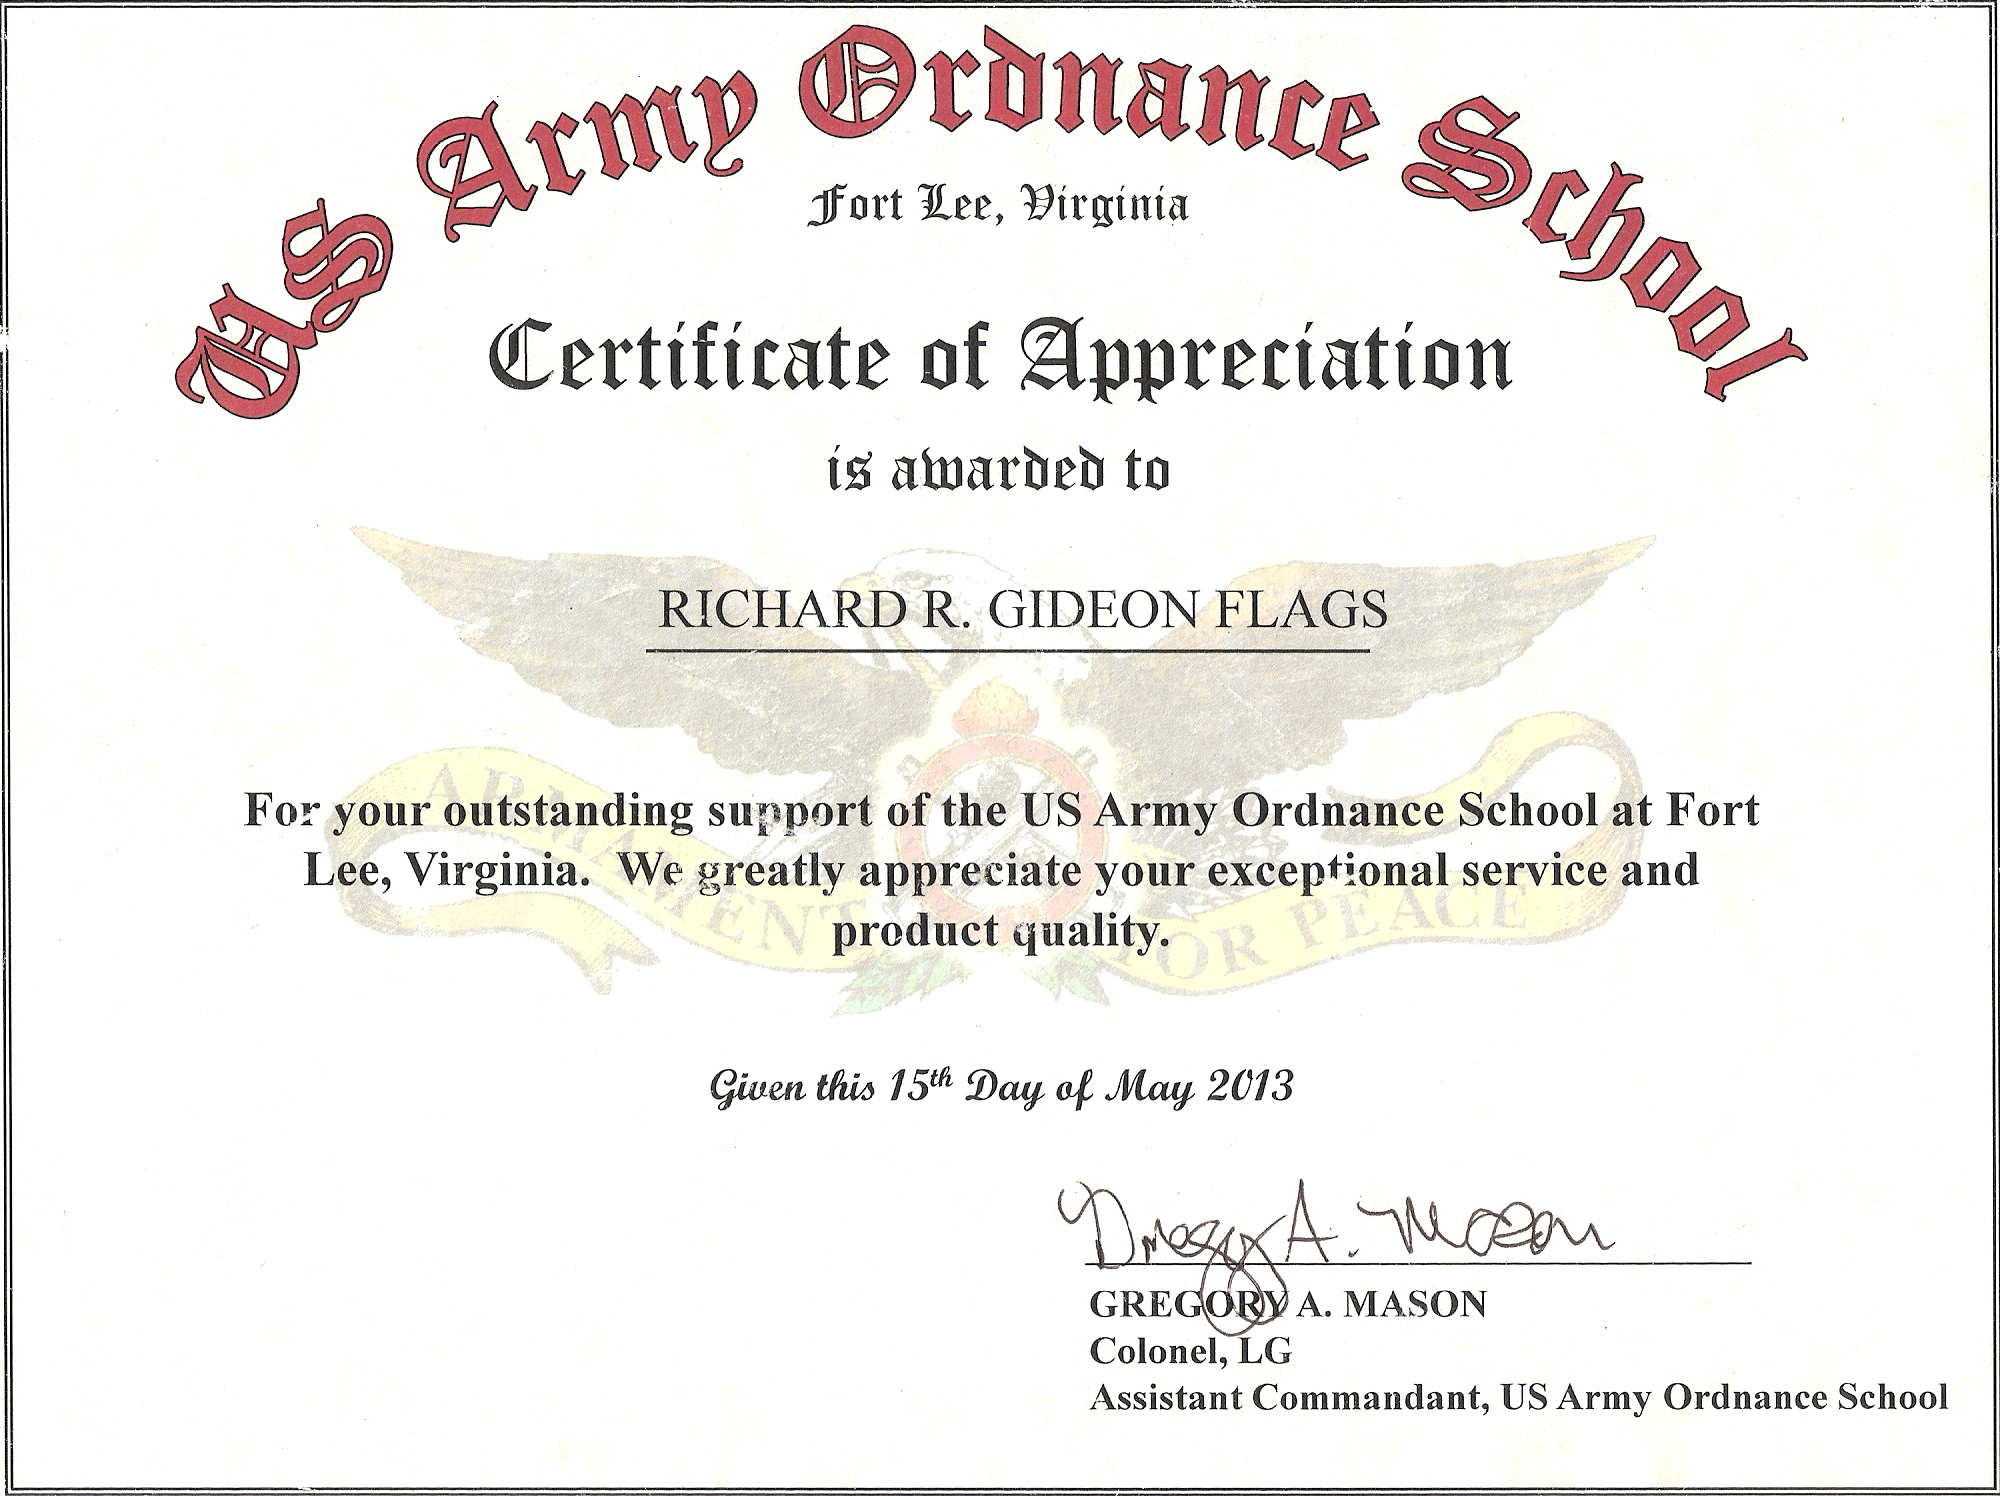 Appreciation certificate wording hatchurbanskript certificate of appreciation quotes quotesgram yelopaper Choice Image